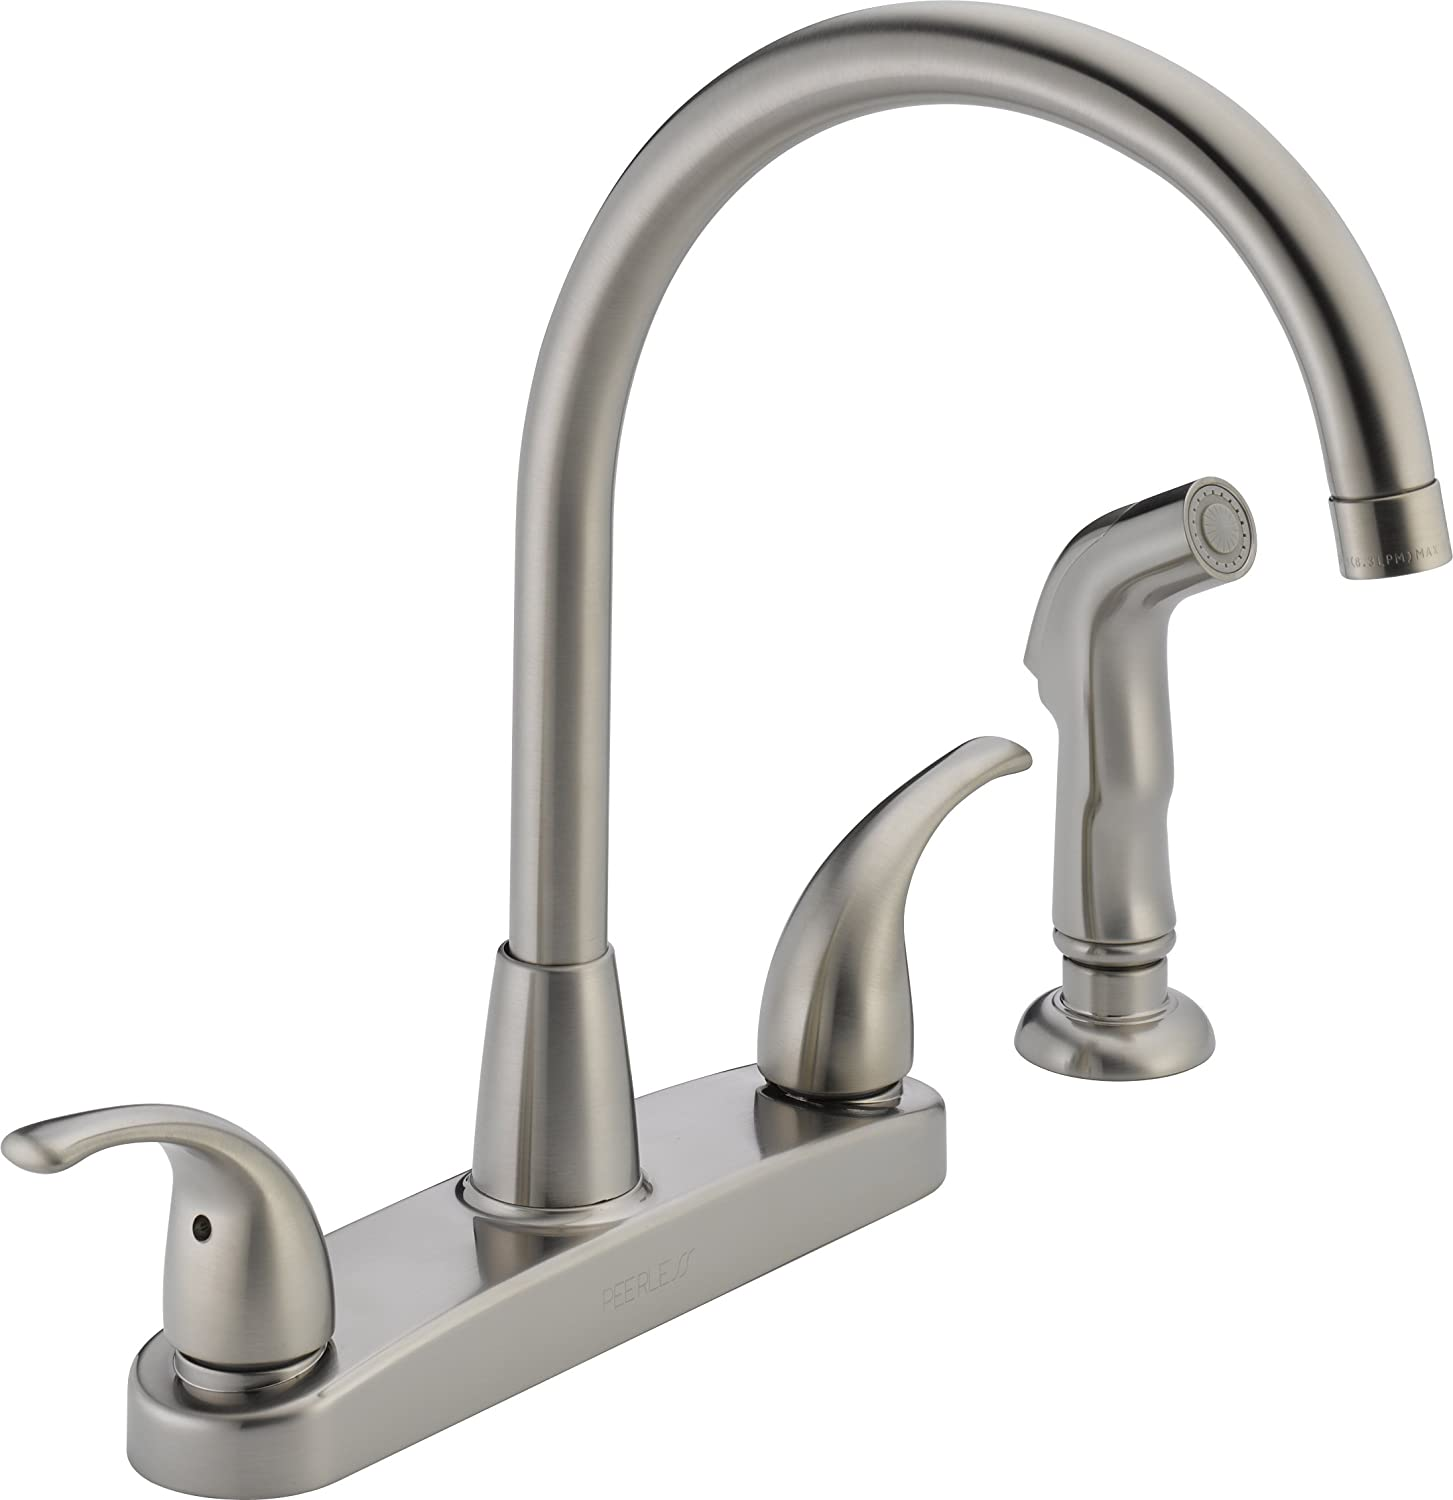 Peerless P299578LF Choice Two Handle Kitchen Faucet, Chrome   Touch On  Kitchen Sink Faucets   Amazon.com